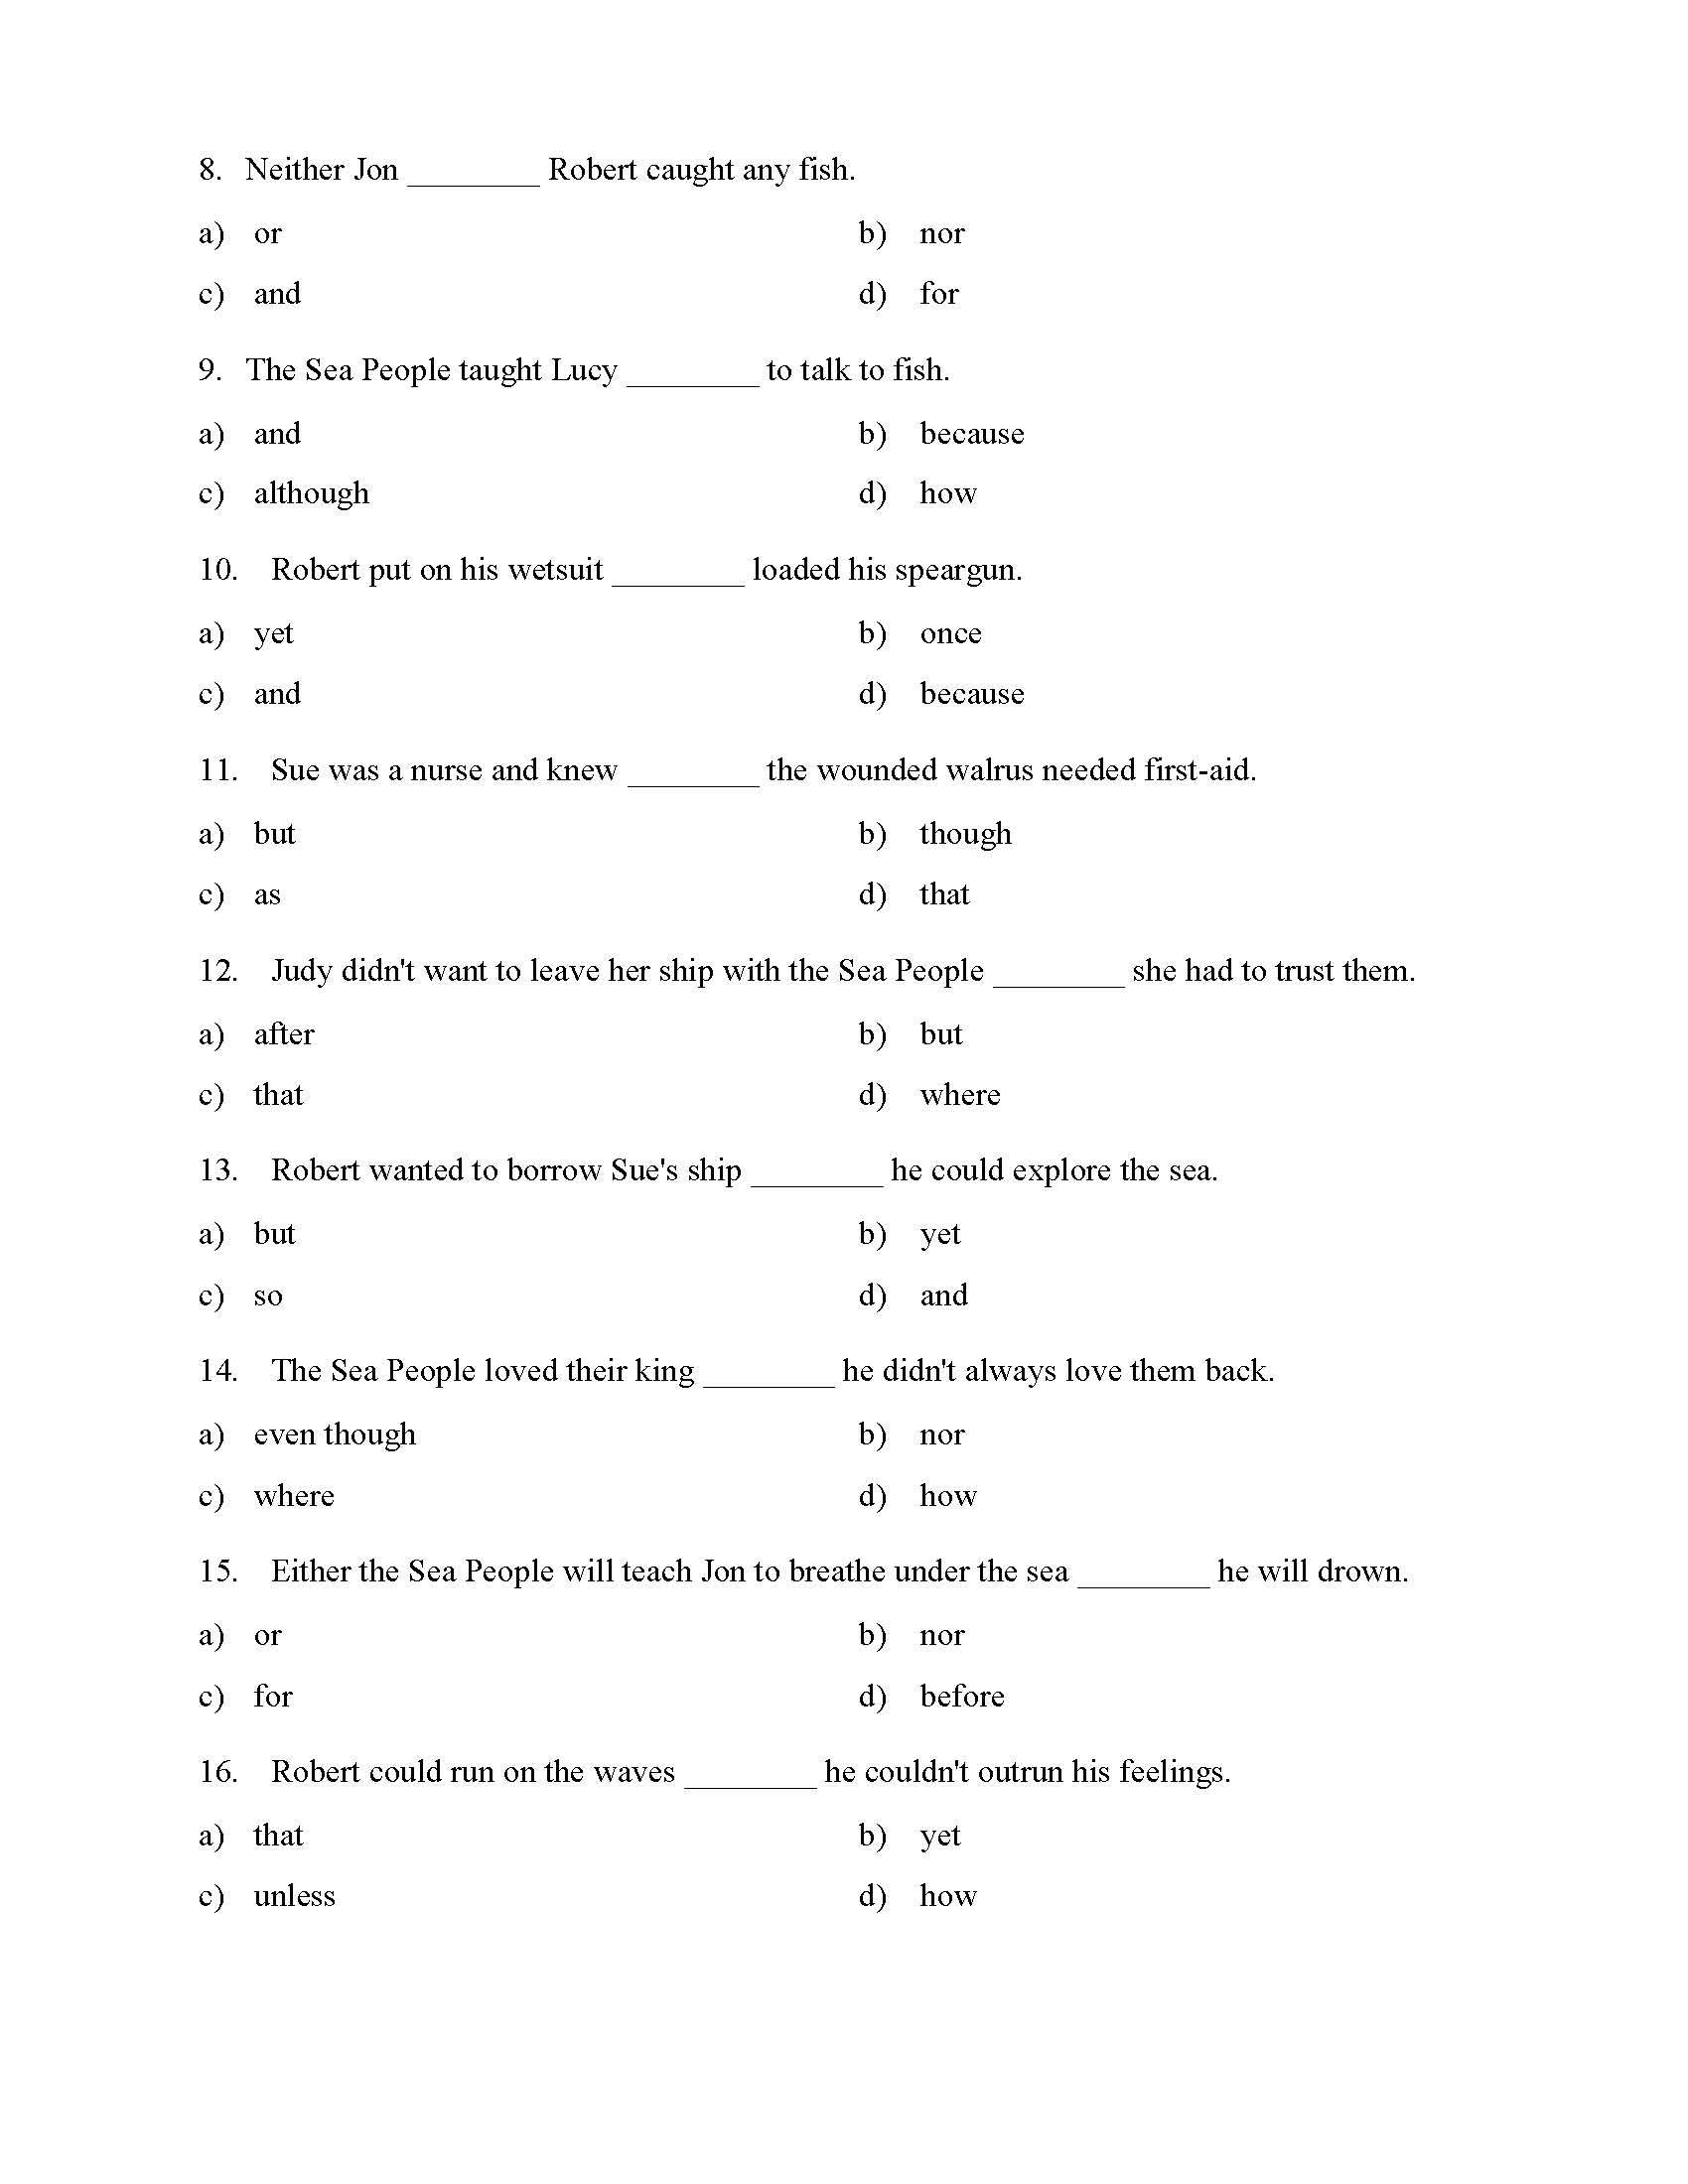 Choosing the Right Conjunction Worksheet - Reading Level 1 | Preview